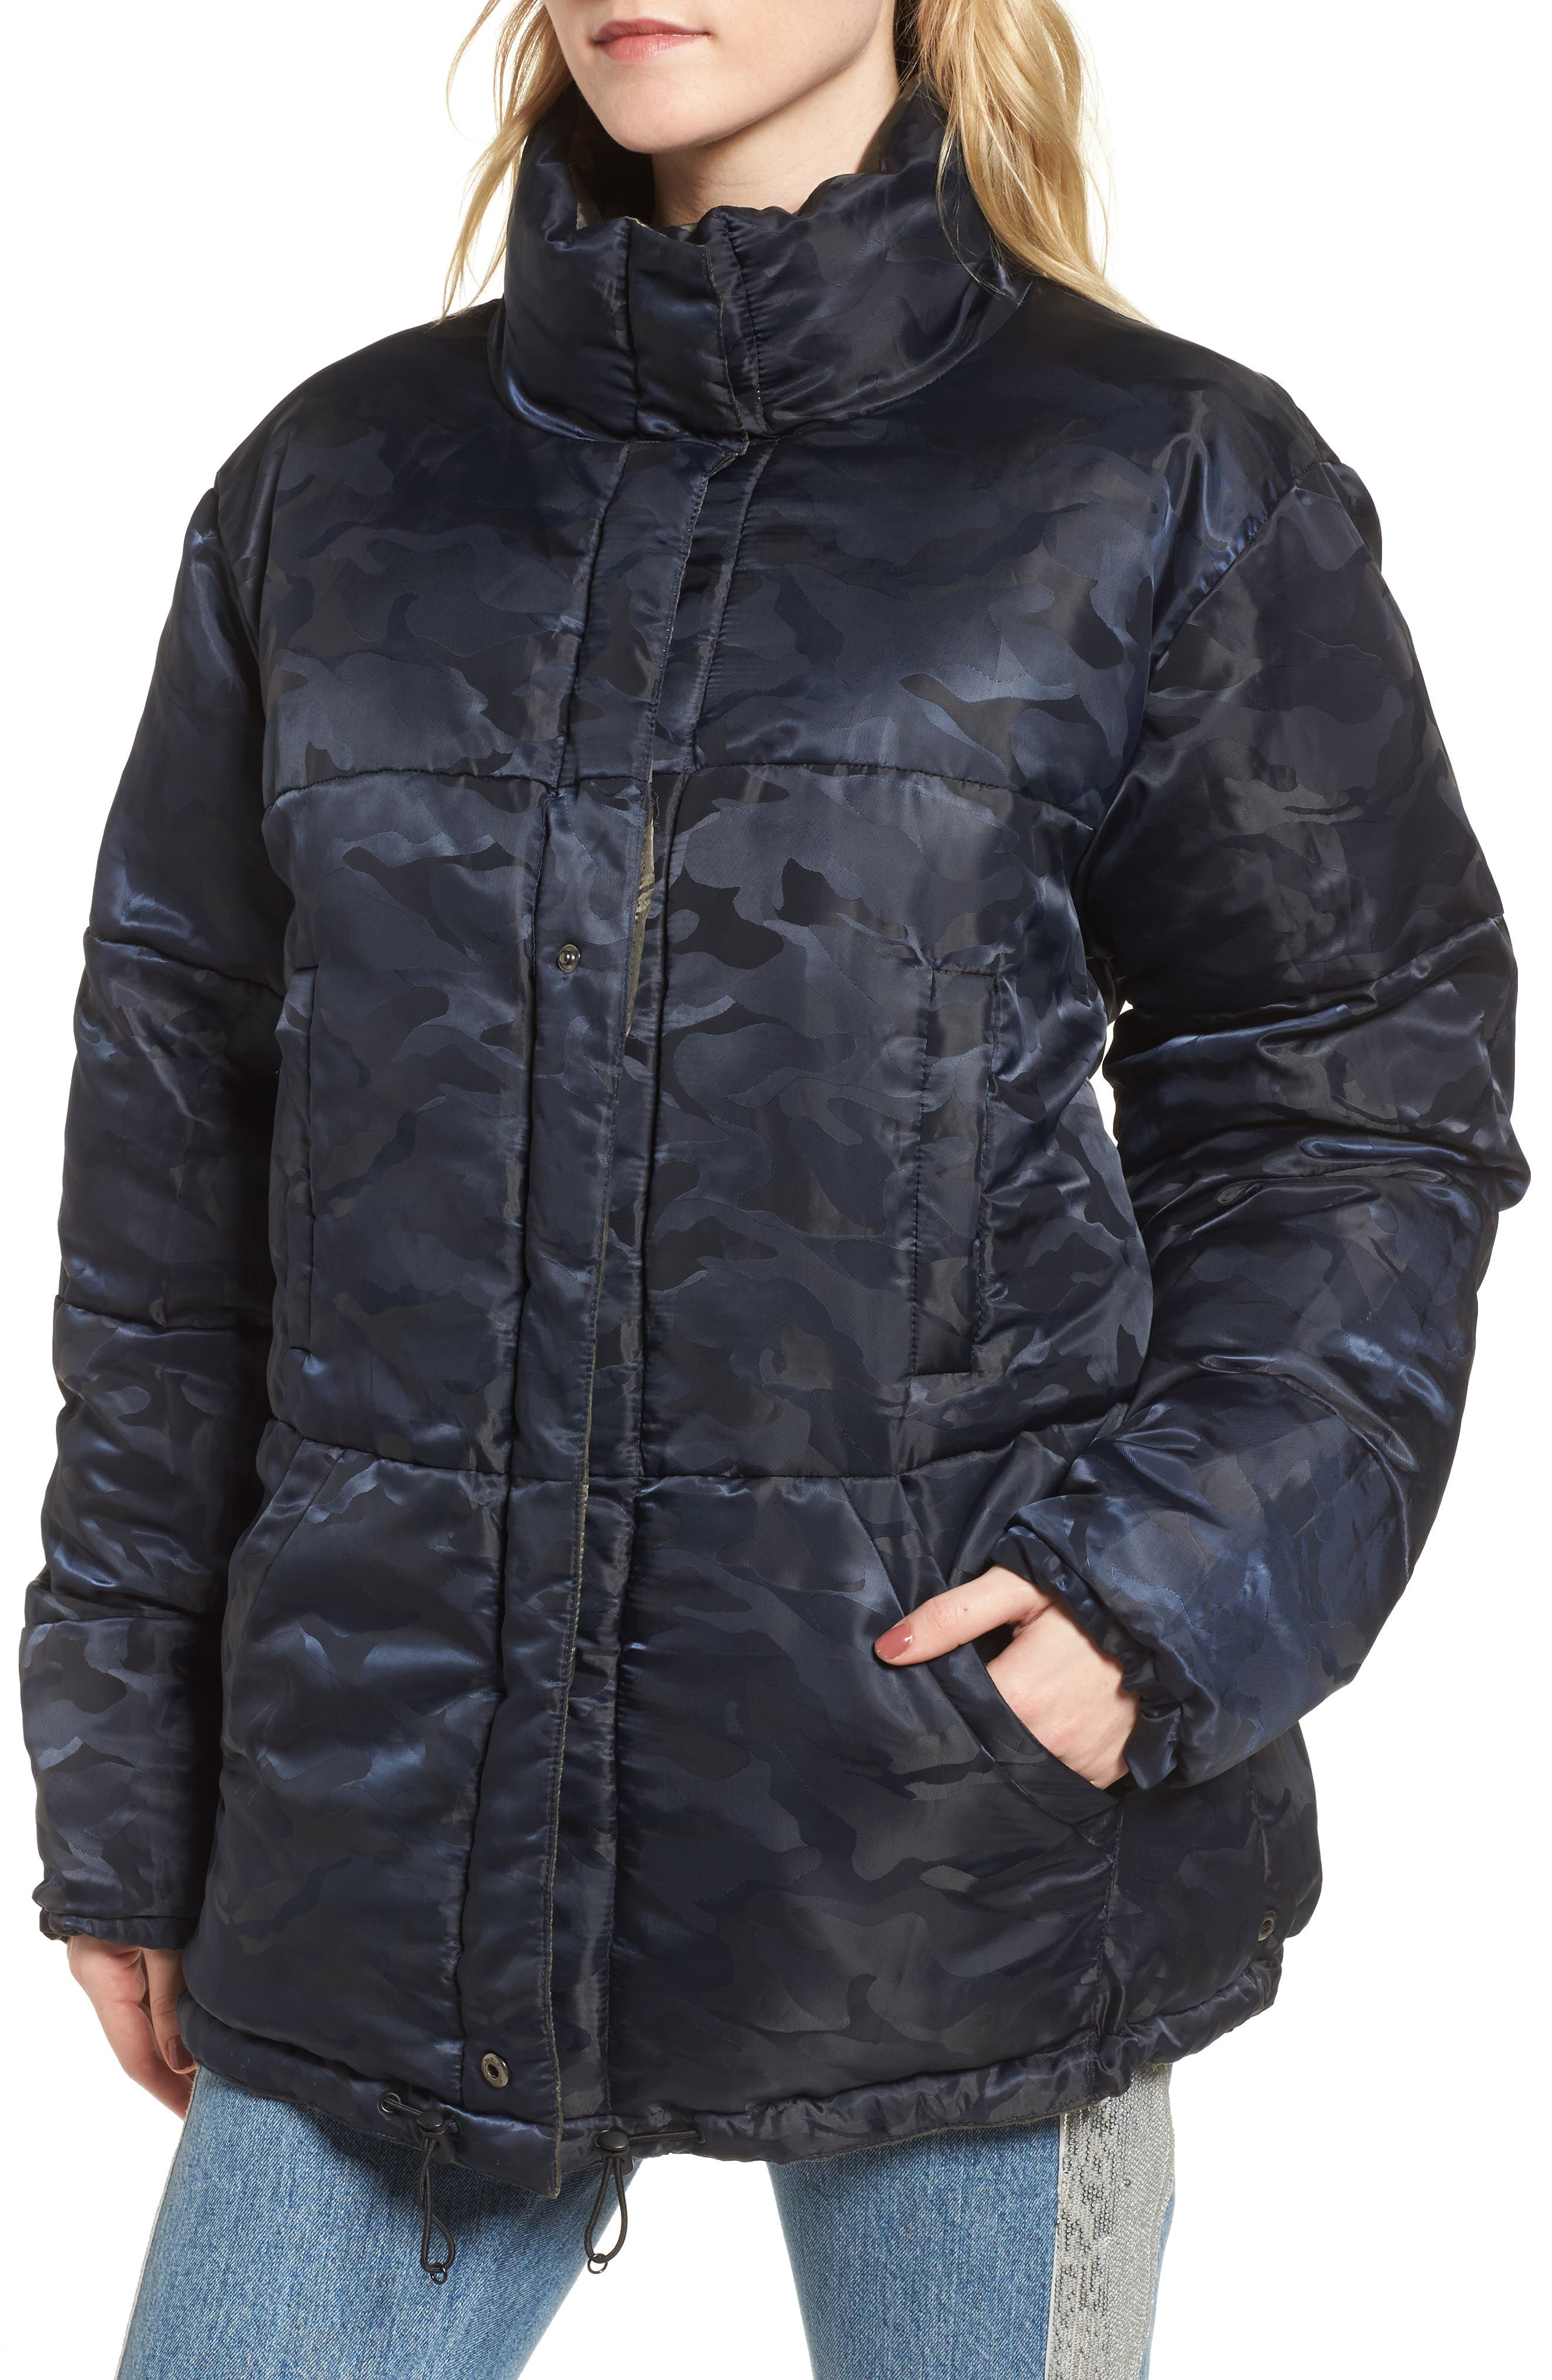 Reversible Puffer Jacket,                             Alternate thumbnail 3, color,                             Army/ Navy